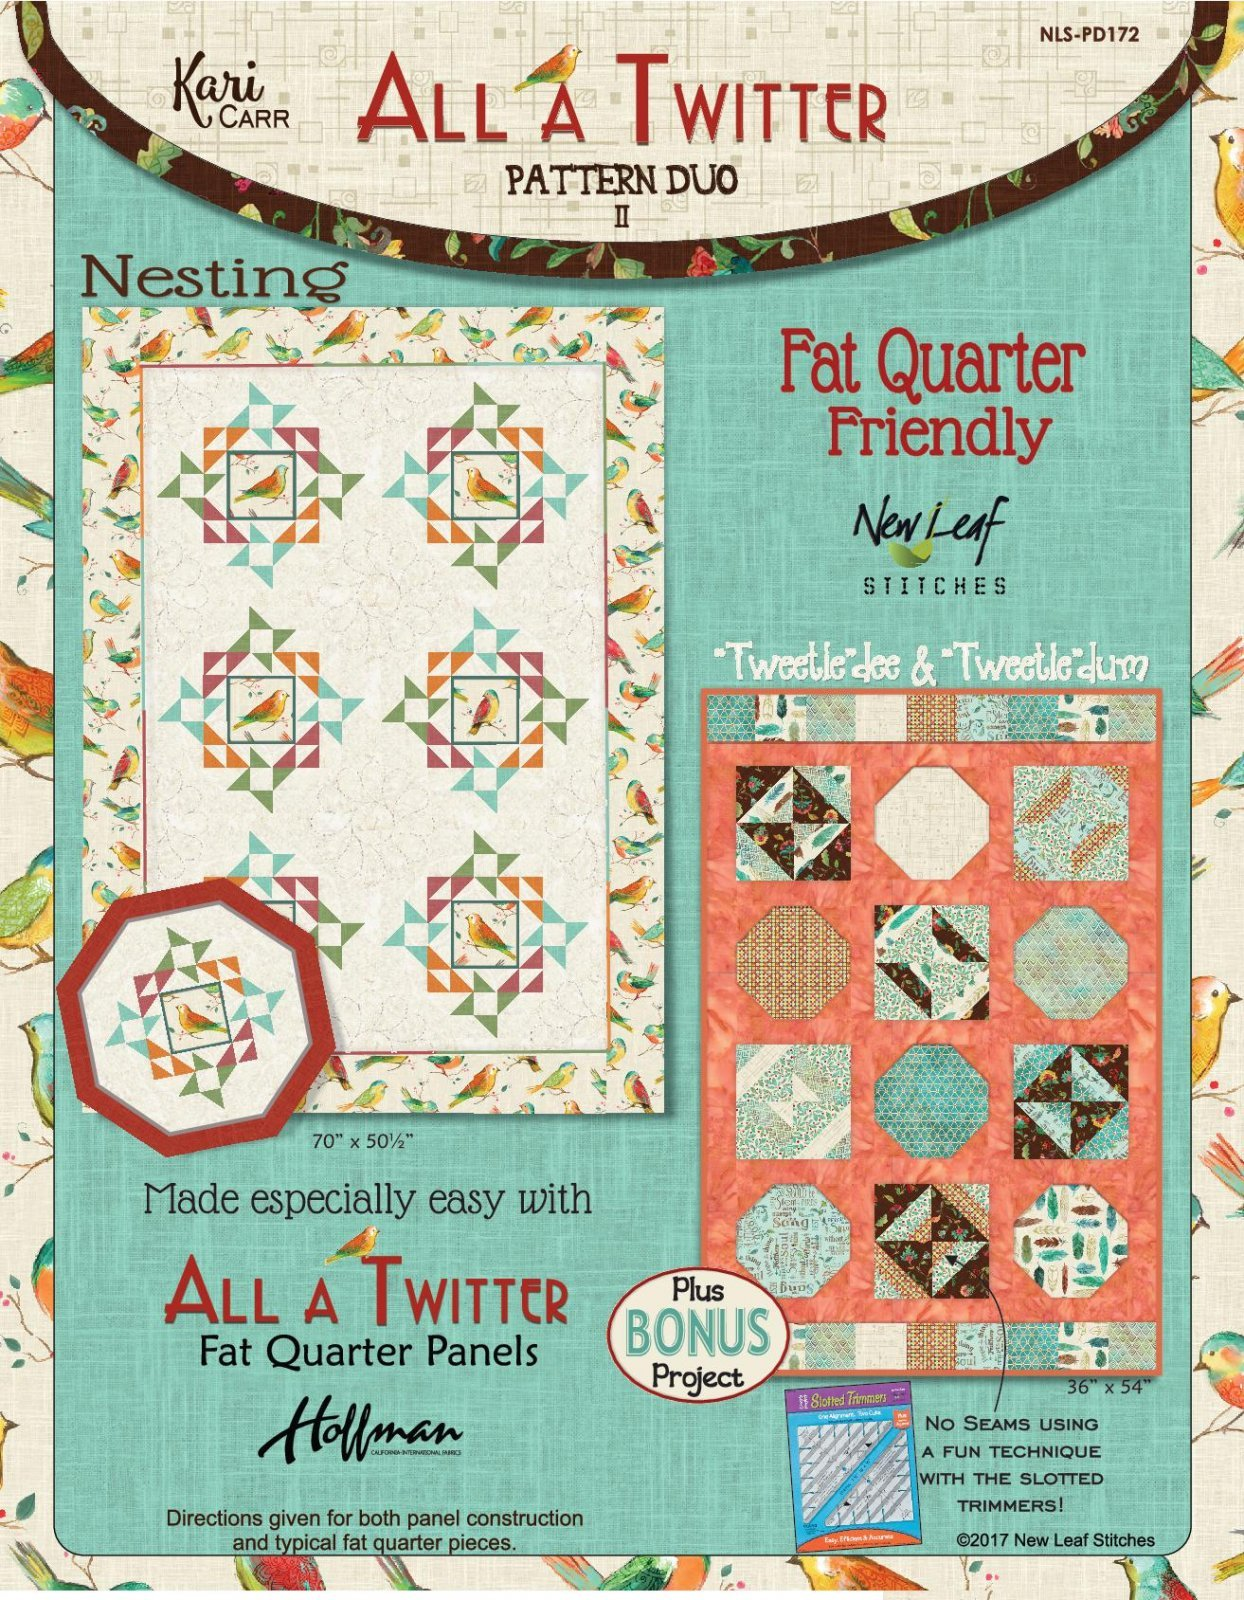 NEW LEAF STITCHES ALL A TWITTER DUO II